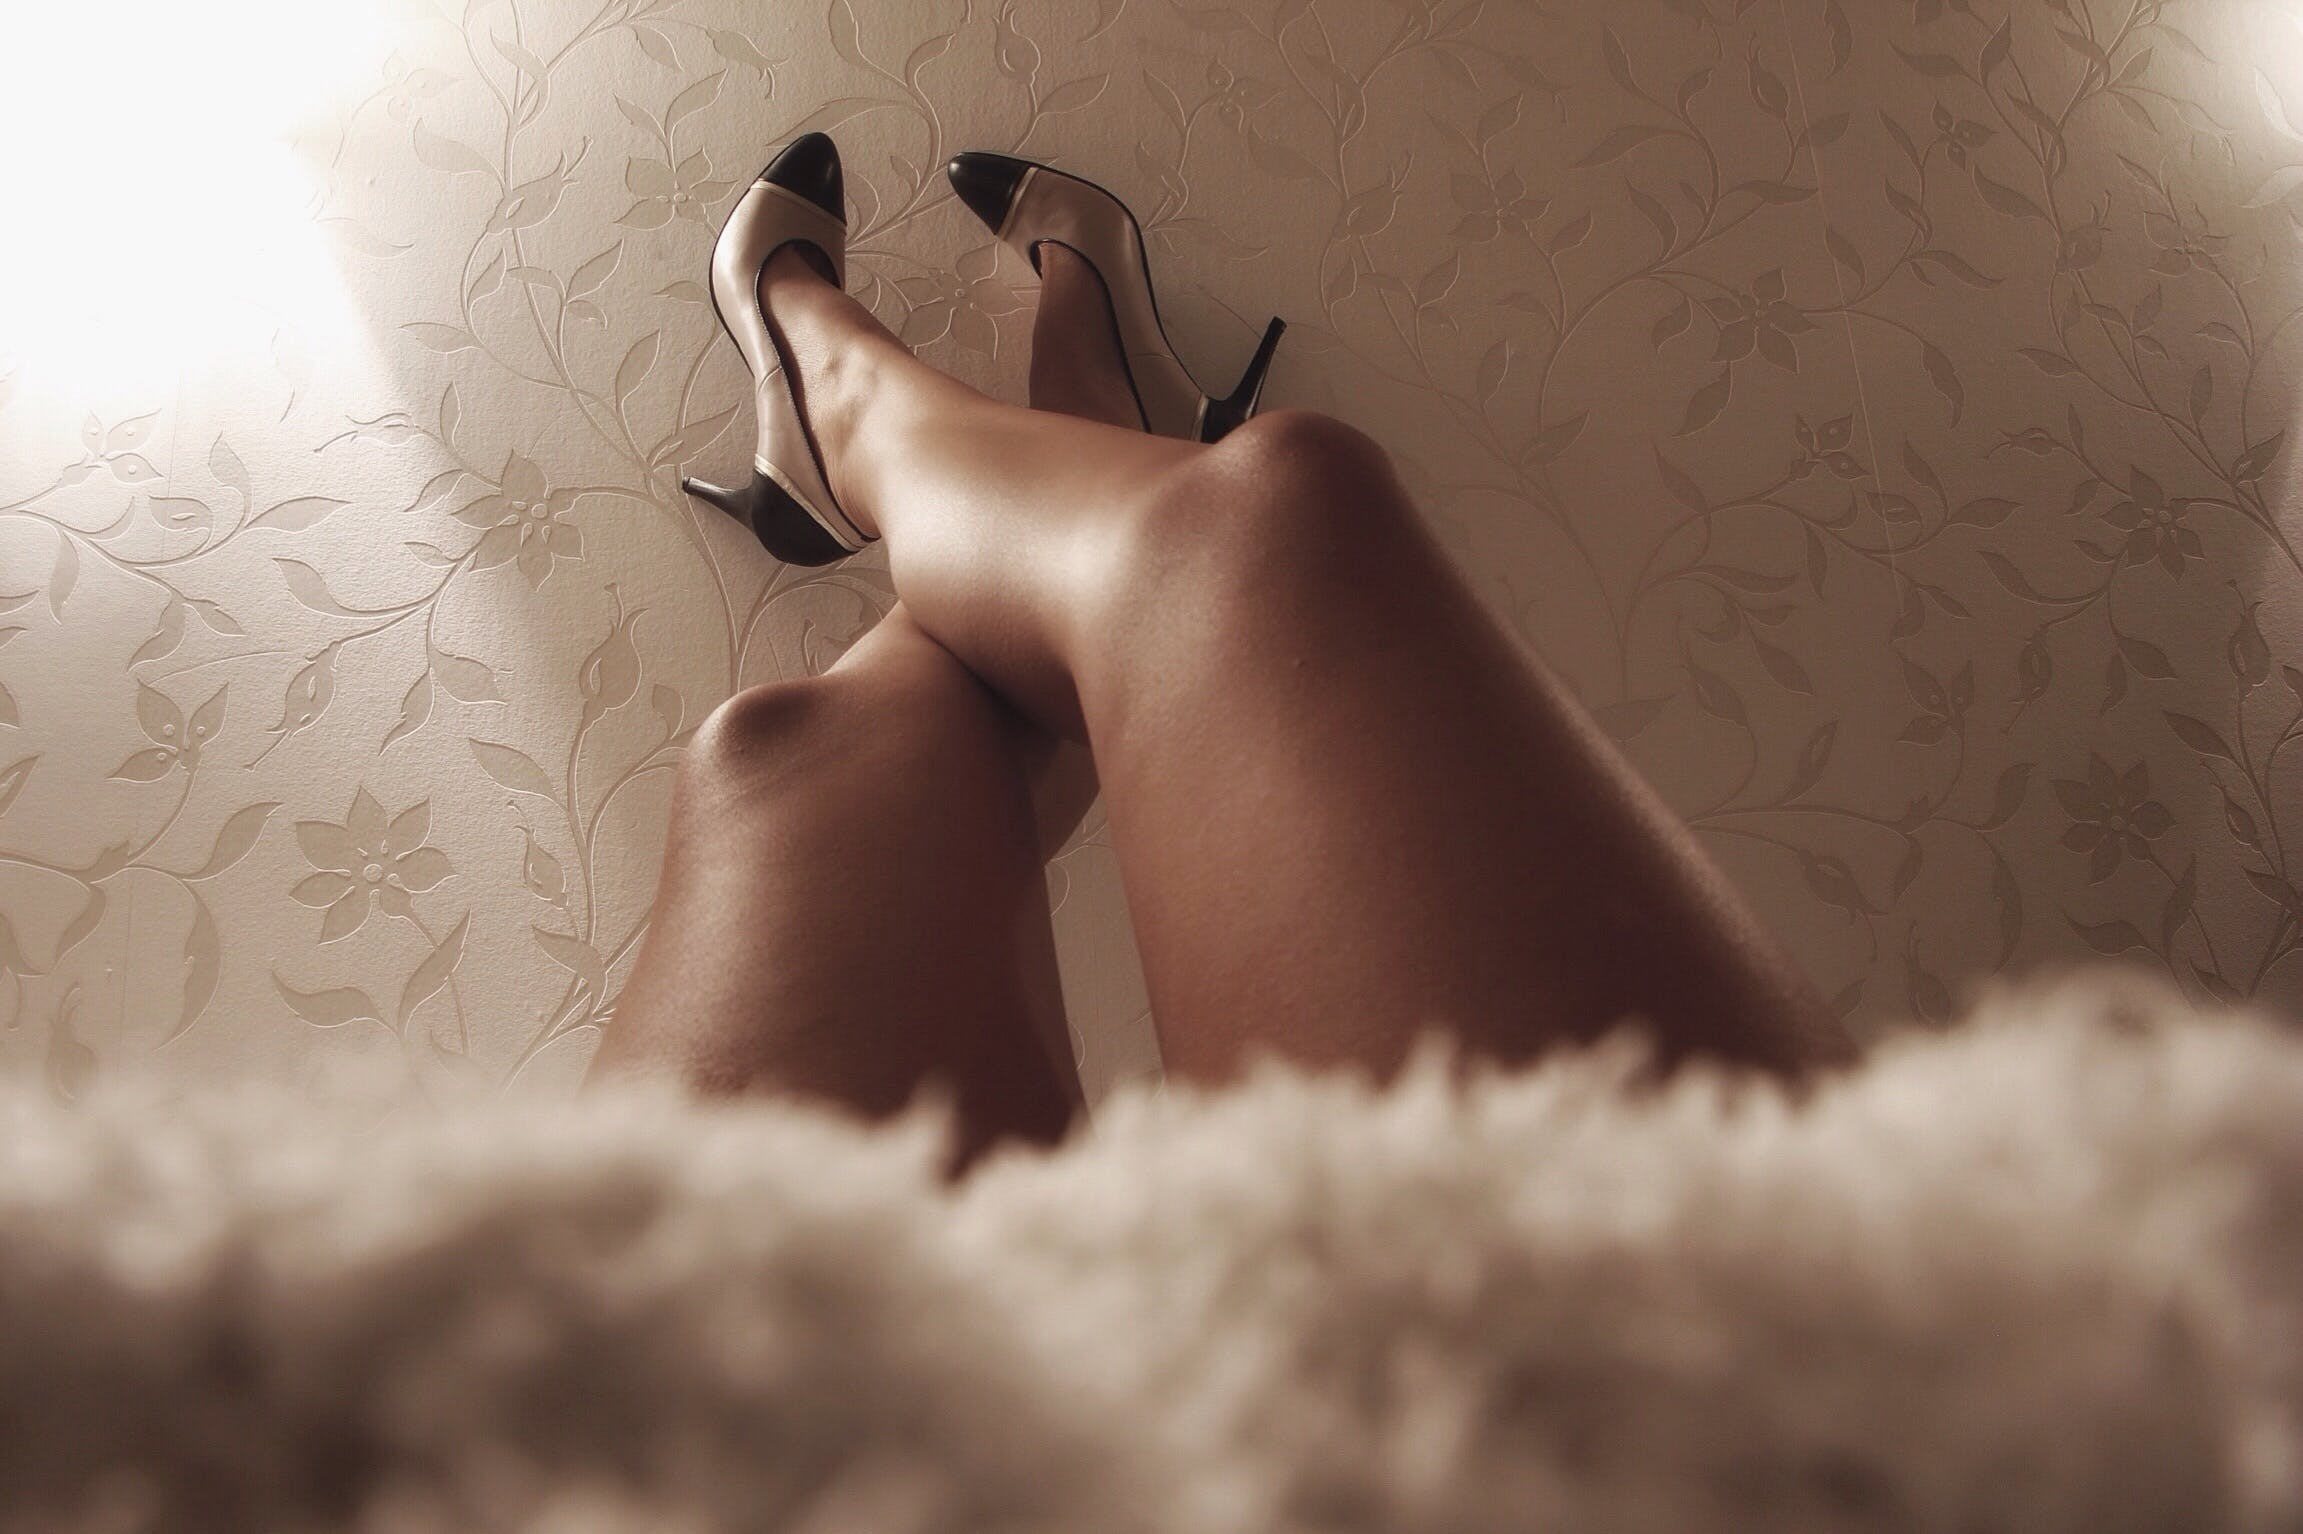 Free stock photo of feet, high heels, legs, women